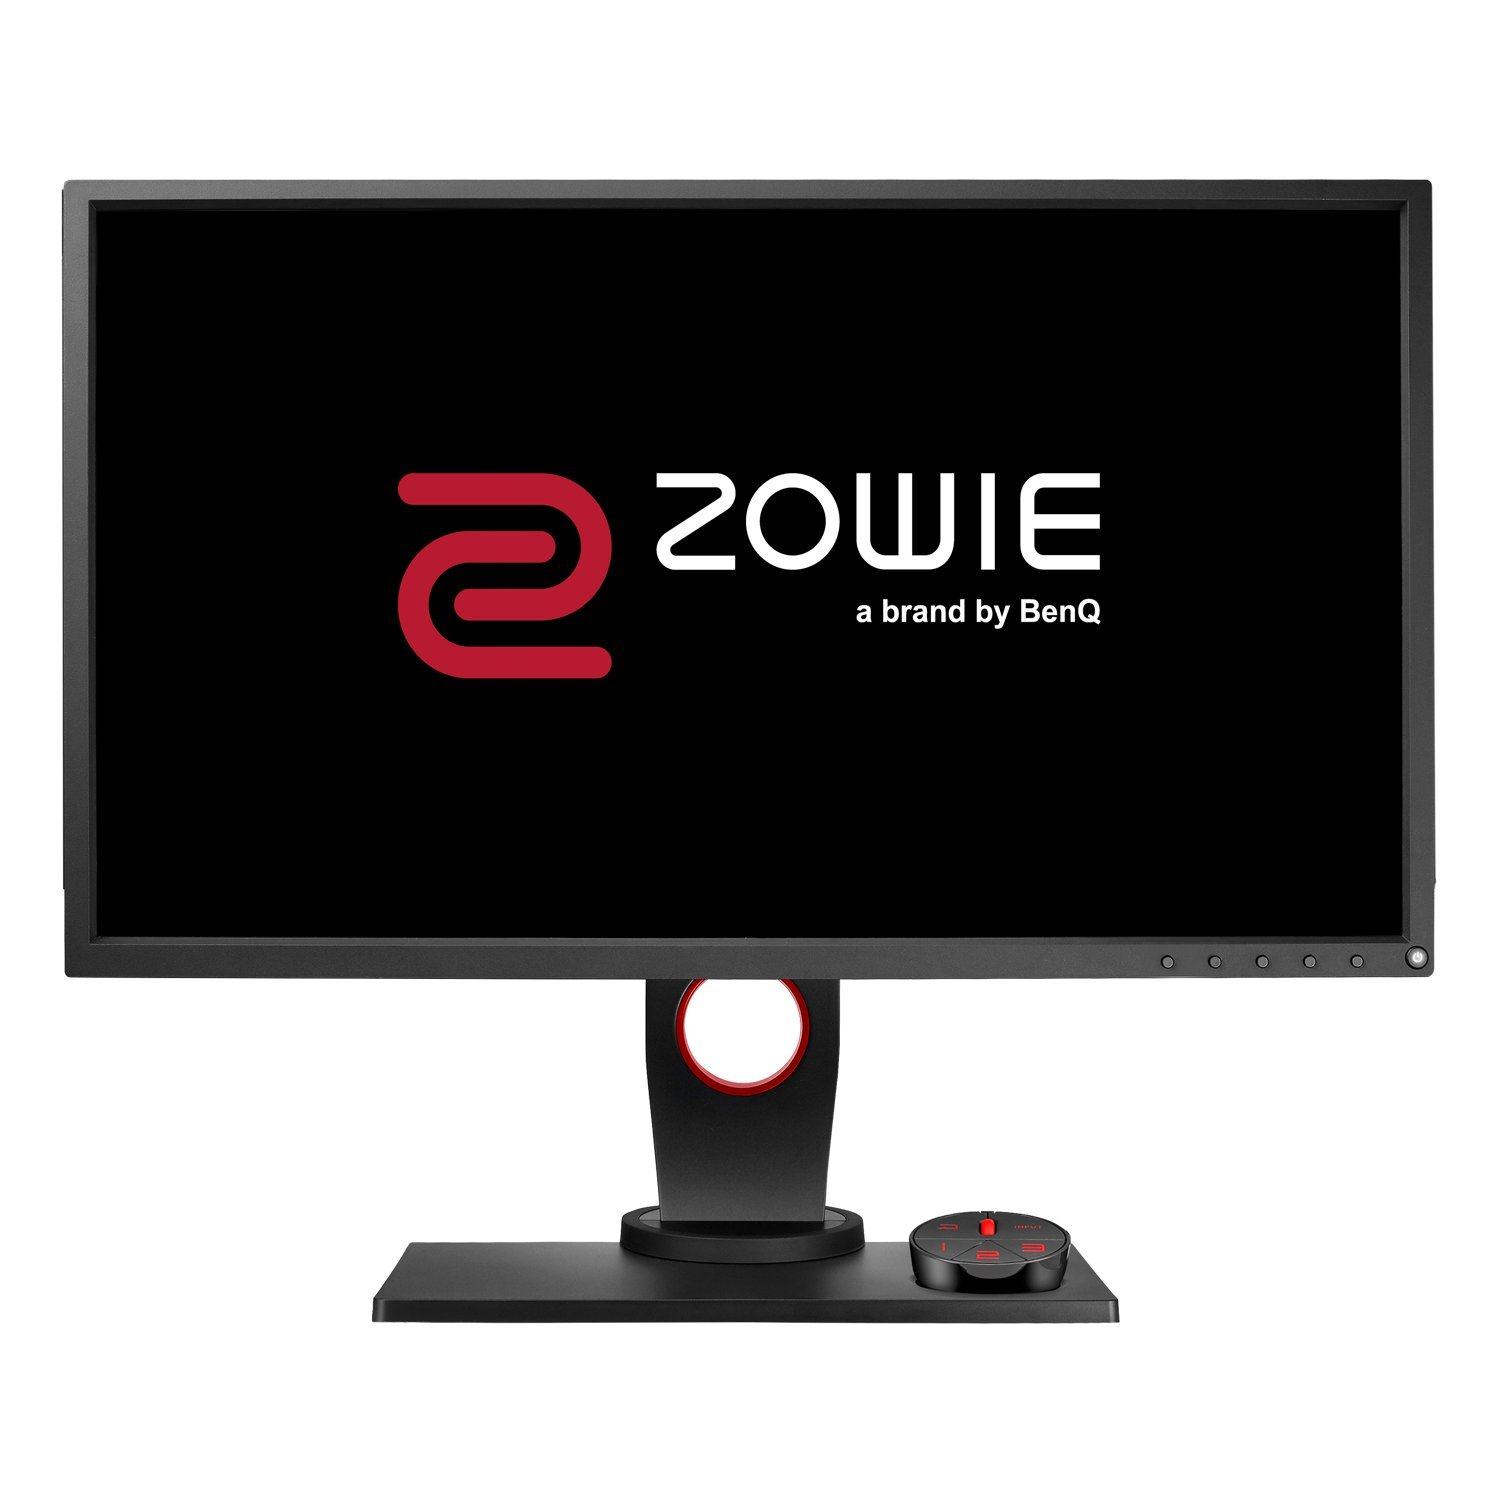 BenQ Zowie XL2540 Gaming Monitor Black Friday Deal 2020